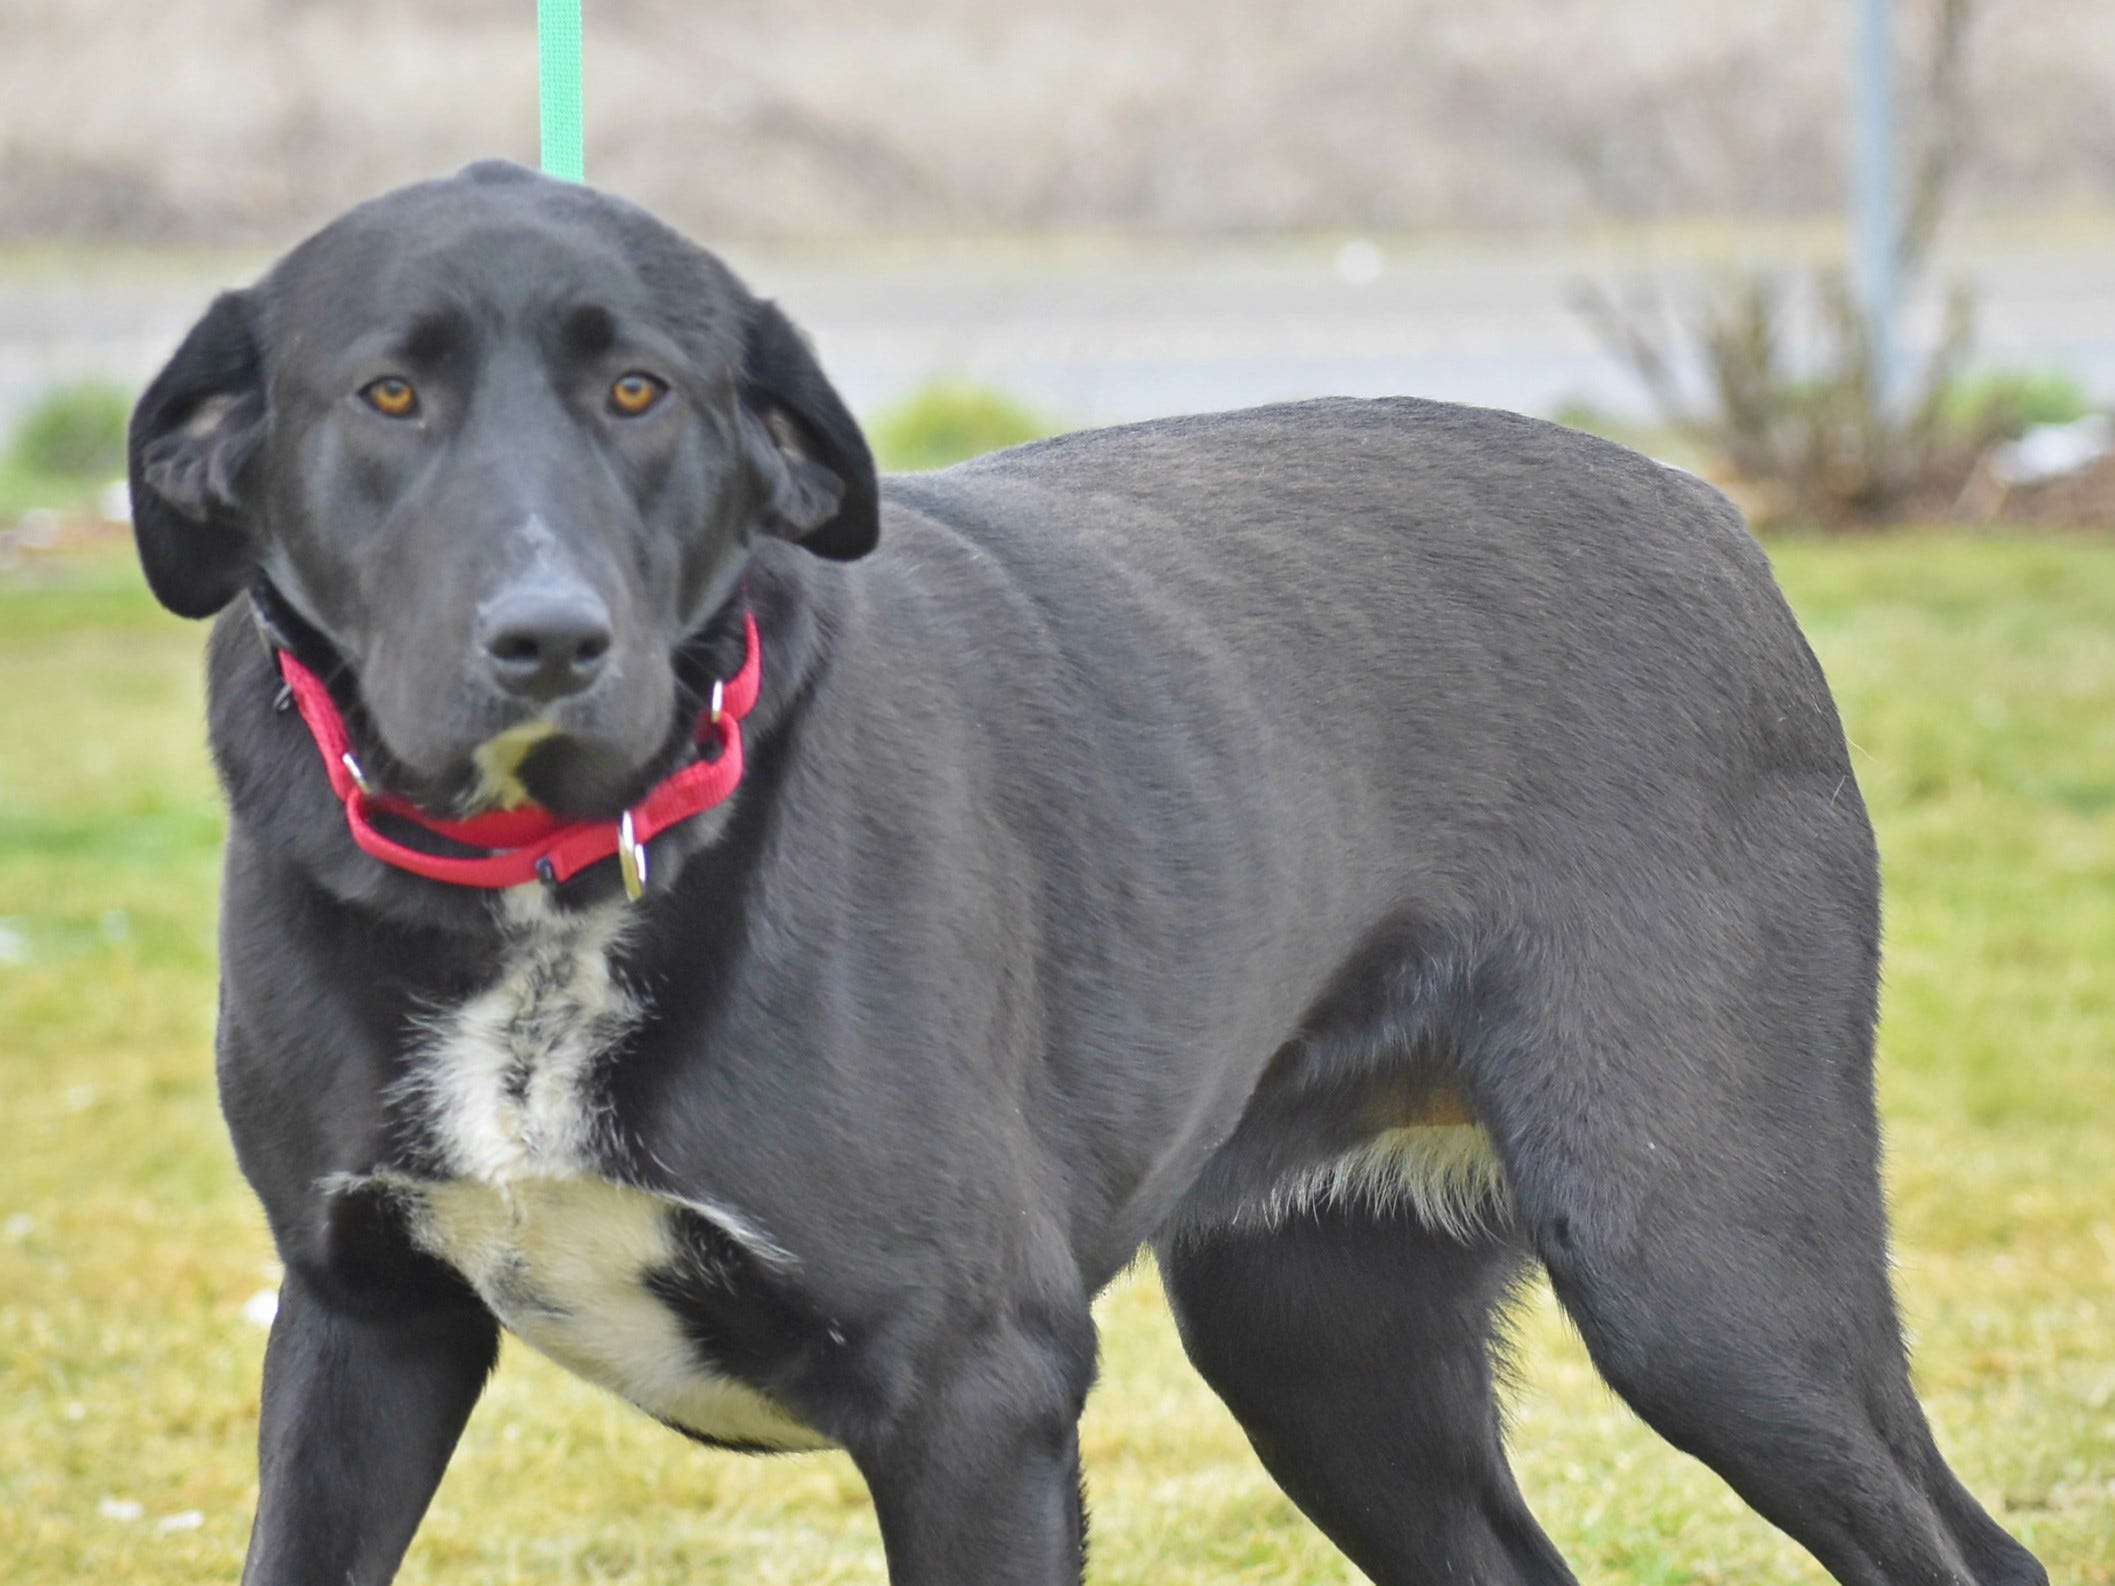 Molly is a 5-year-old female black and white Labrador Retriever mix. She is a lap dog at heart. Molly loves attention and wants nothing more than to snuggle by your side. Contact Marion County Dog Services at 503-588-5366 or go to www.MCDogs.net.